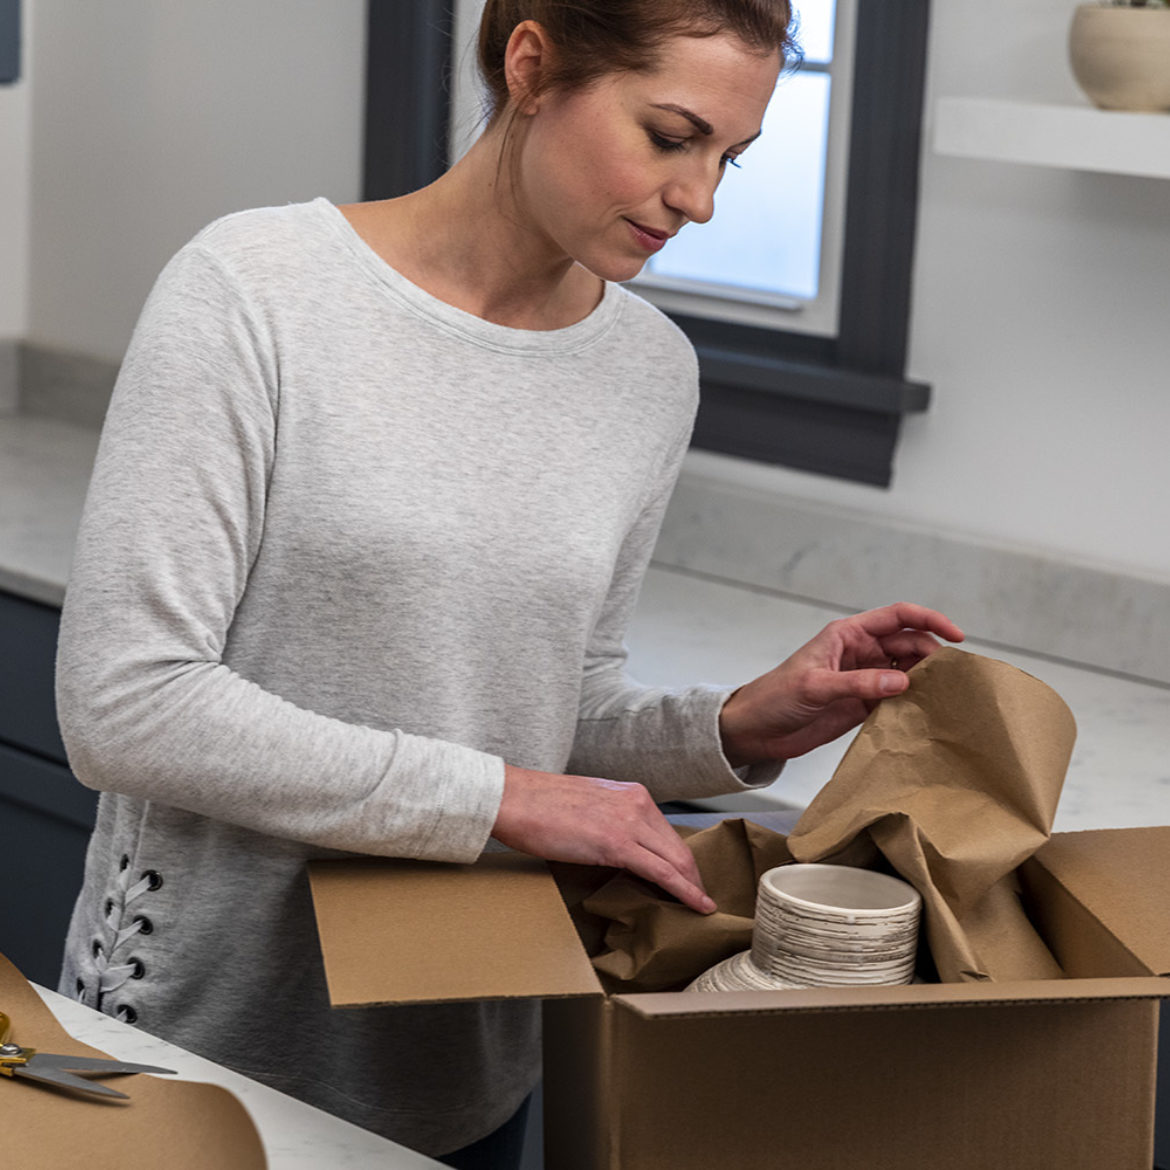 Woman packing a box